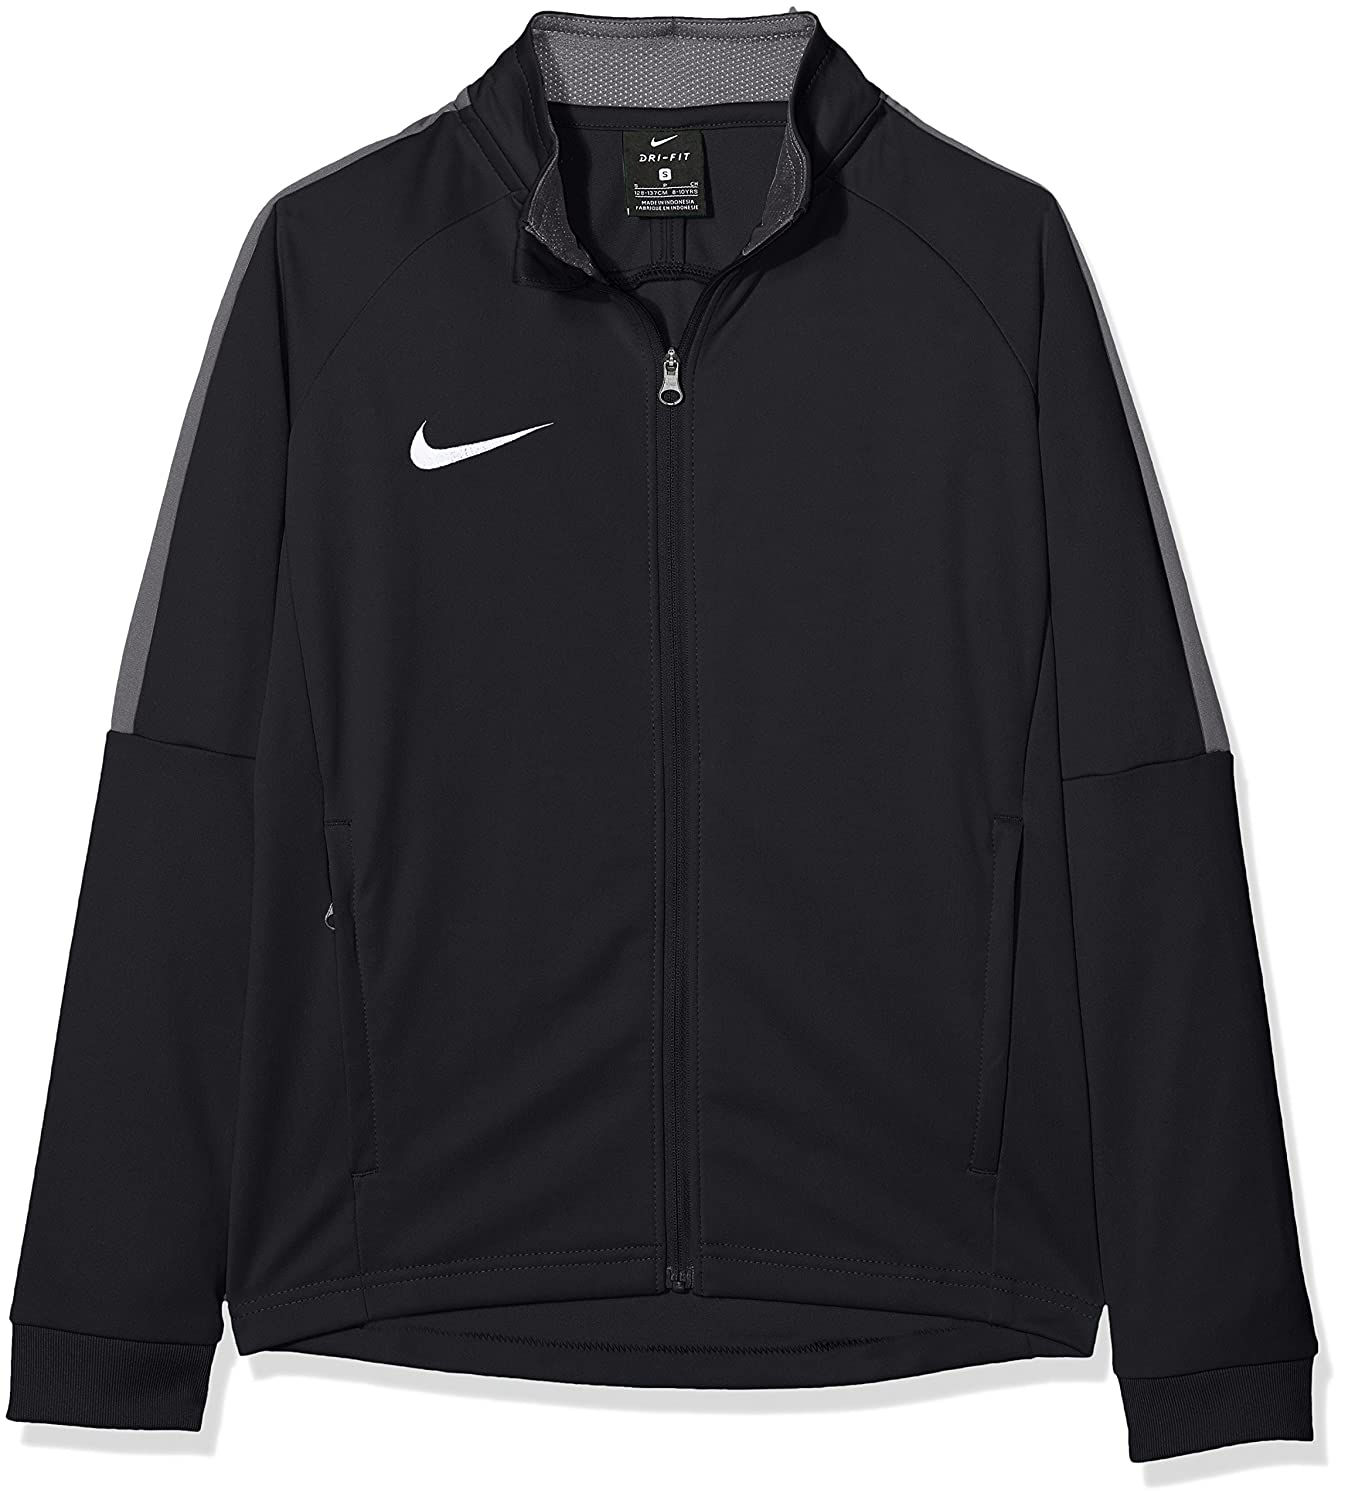 Size Youth Small Black Nike Youth Dry Academy 18 Track Jacket